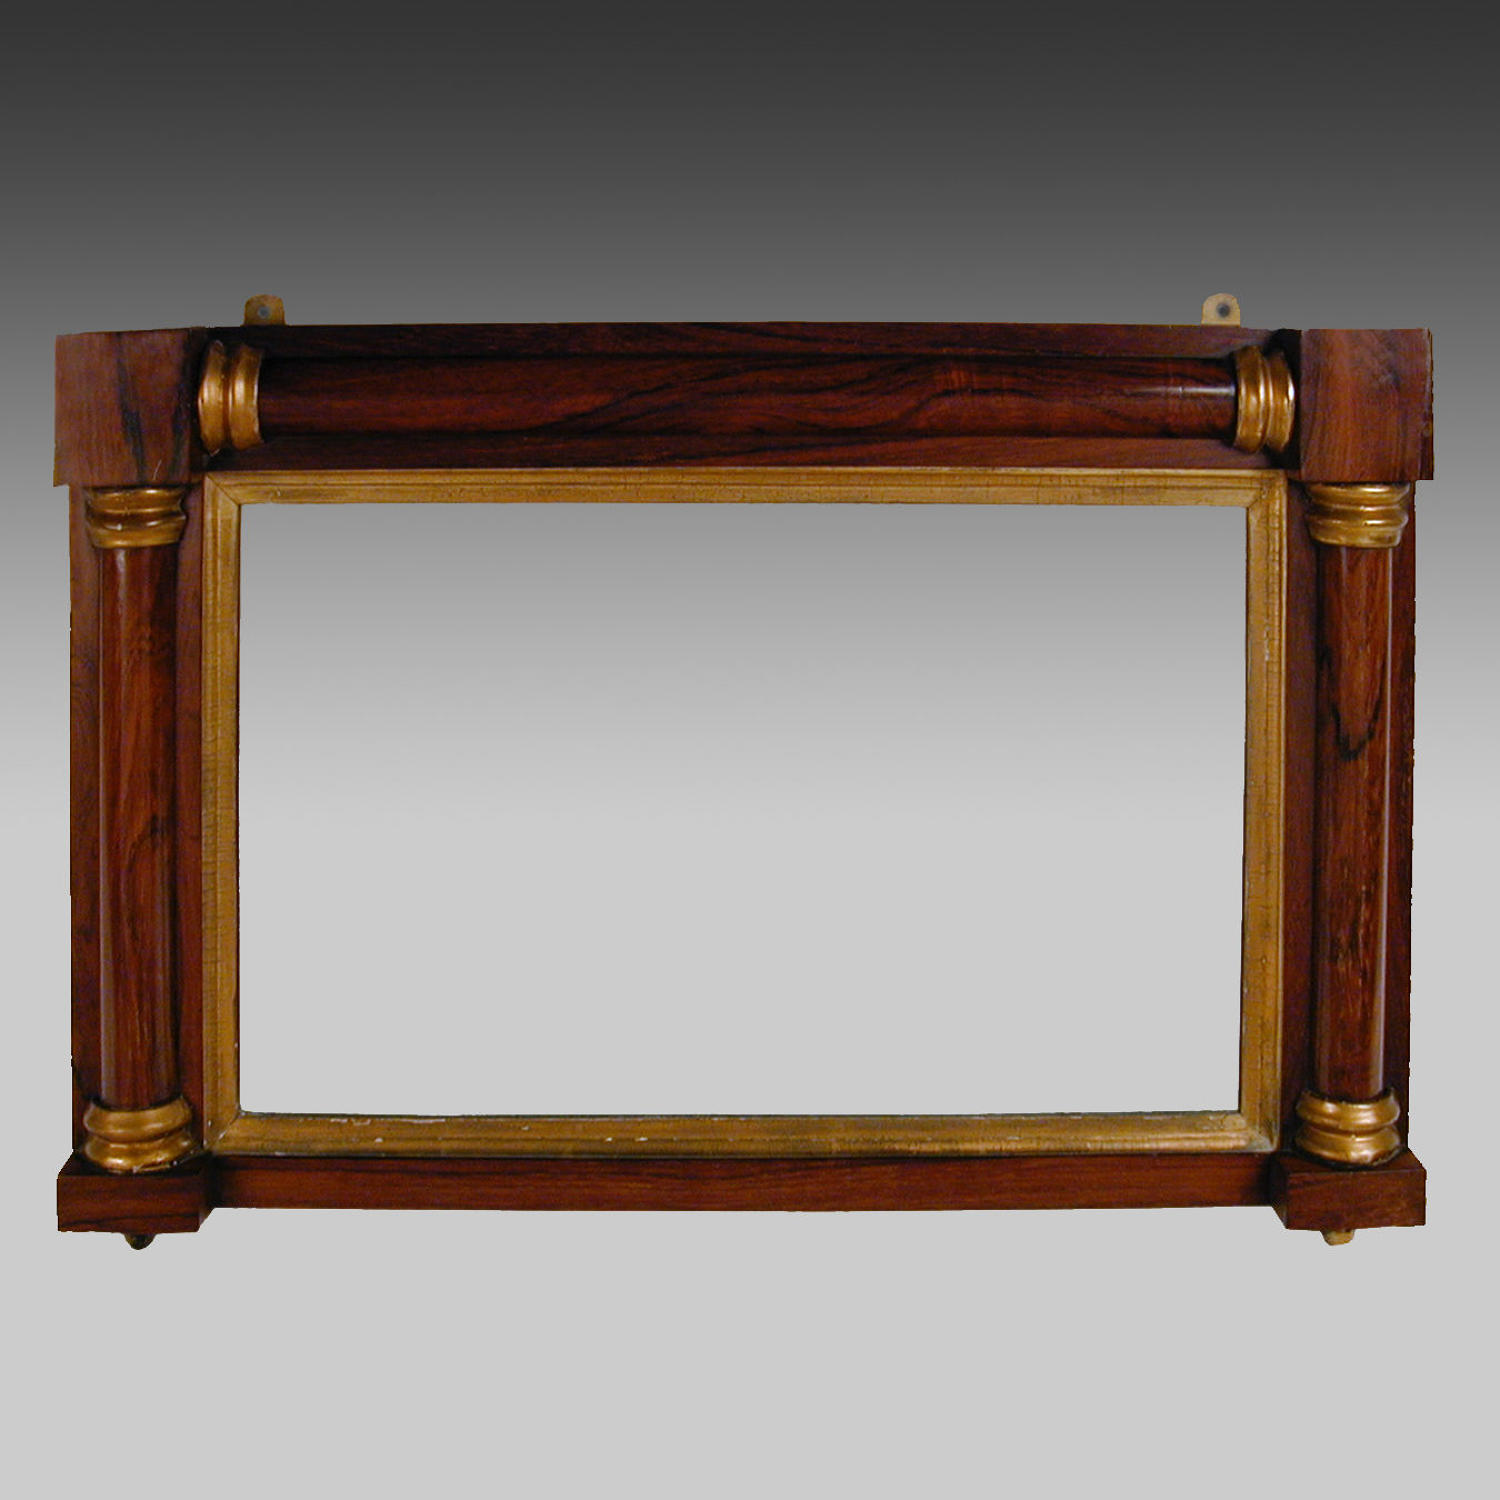 Mid 19th century rosewood overmantle mirror